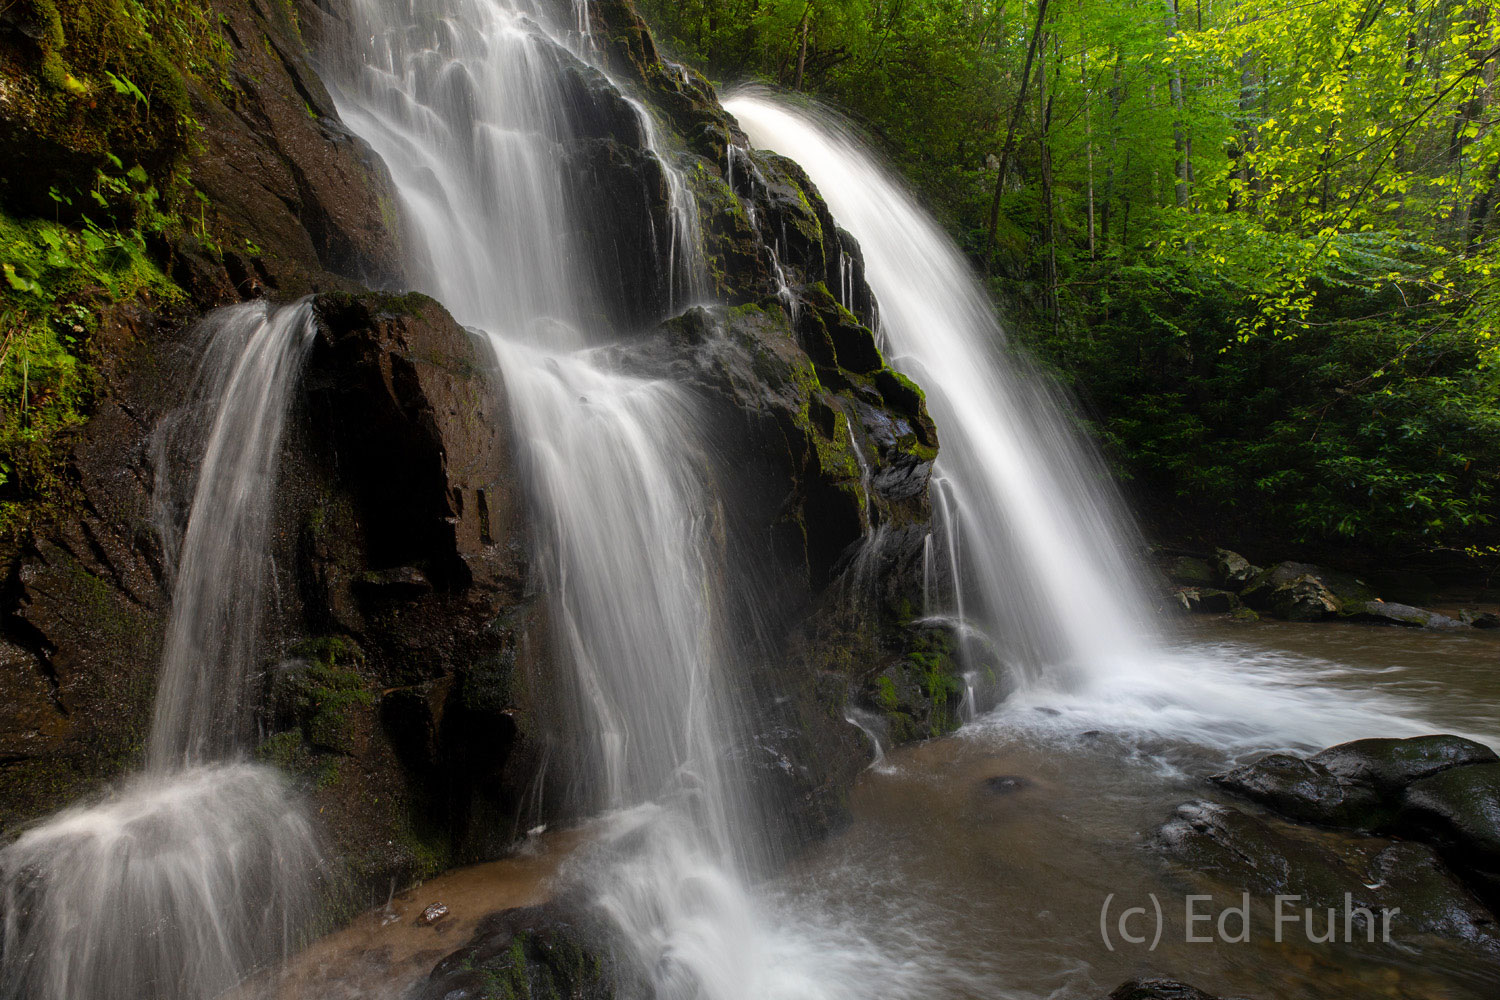 Spruce Flat Falls in Spring is one of the most beautiful falls in the Great Smoky Mountains.